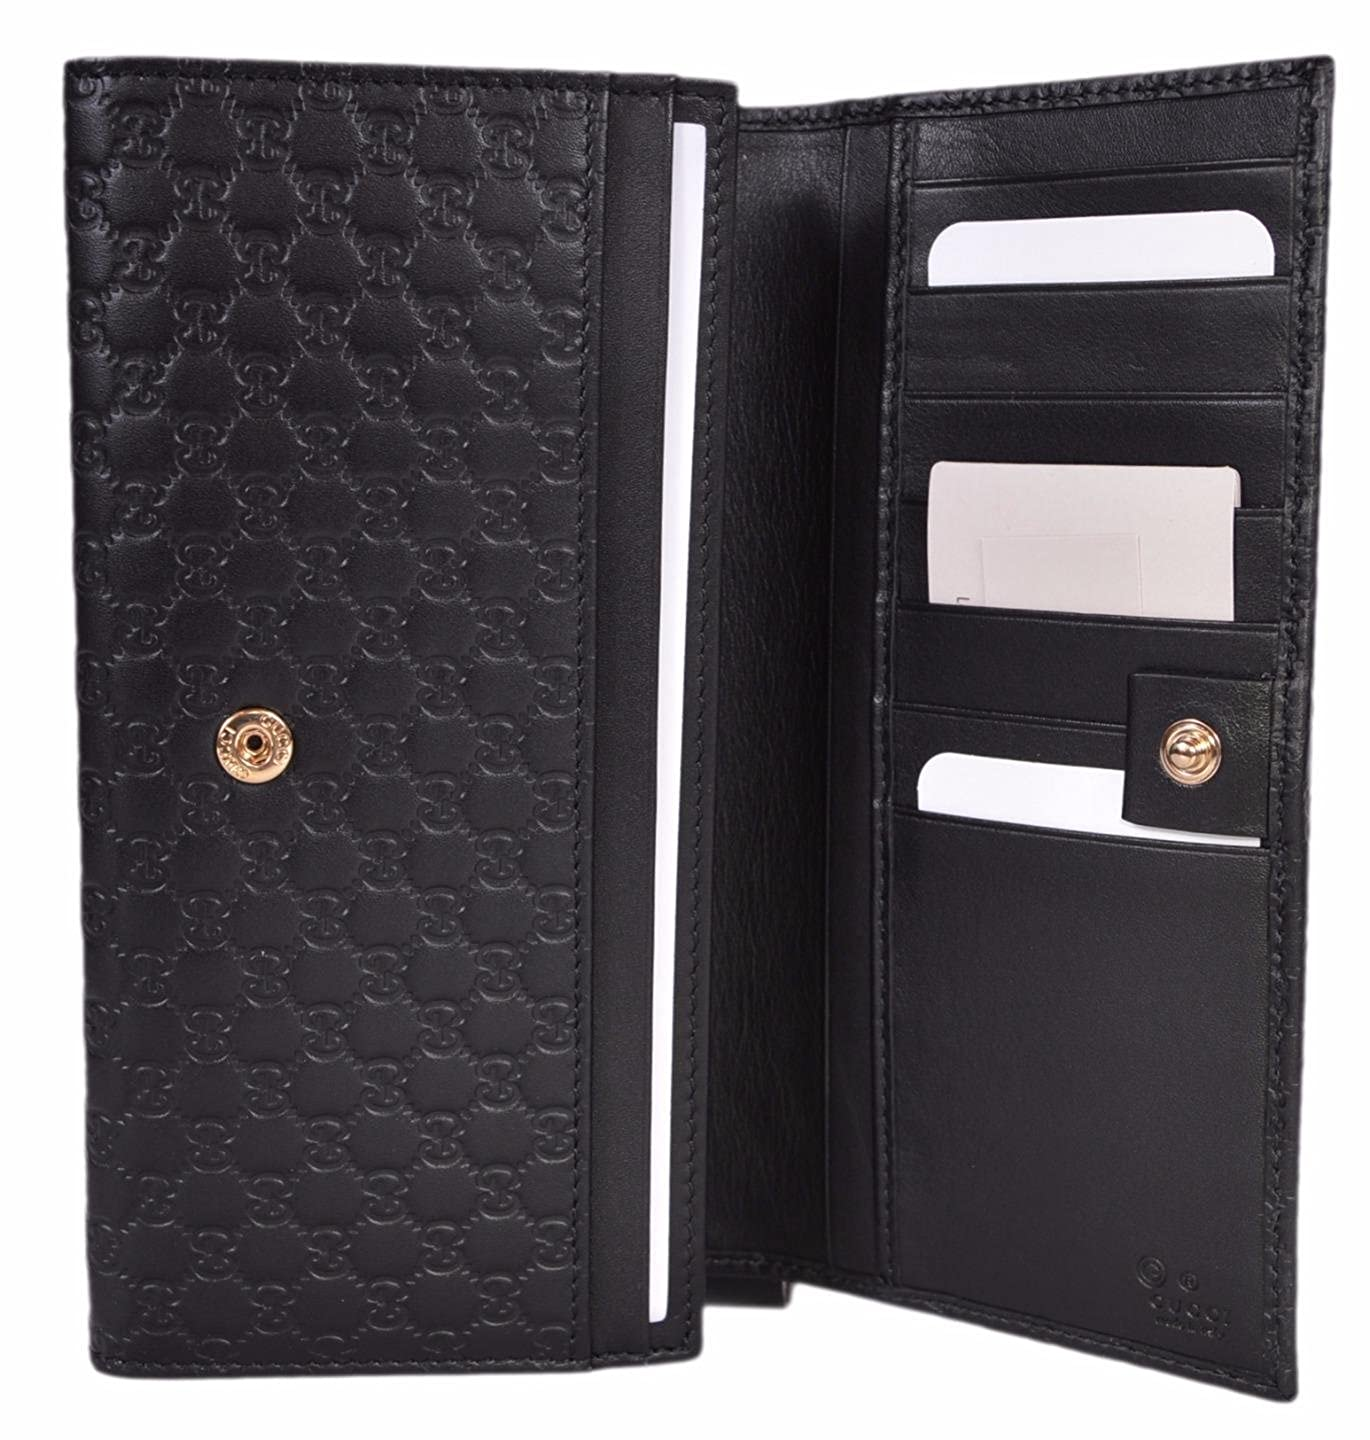 e94a0bbb908 Gucci Women s Leather Micro GG Continental Bifold Wallet (449396 Black) at  Amazon Women s Clothing store